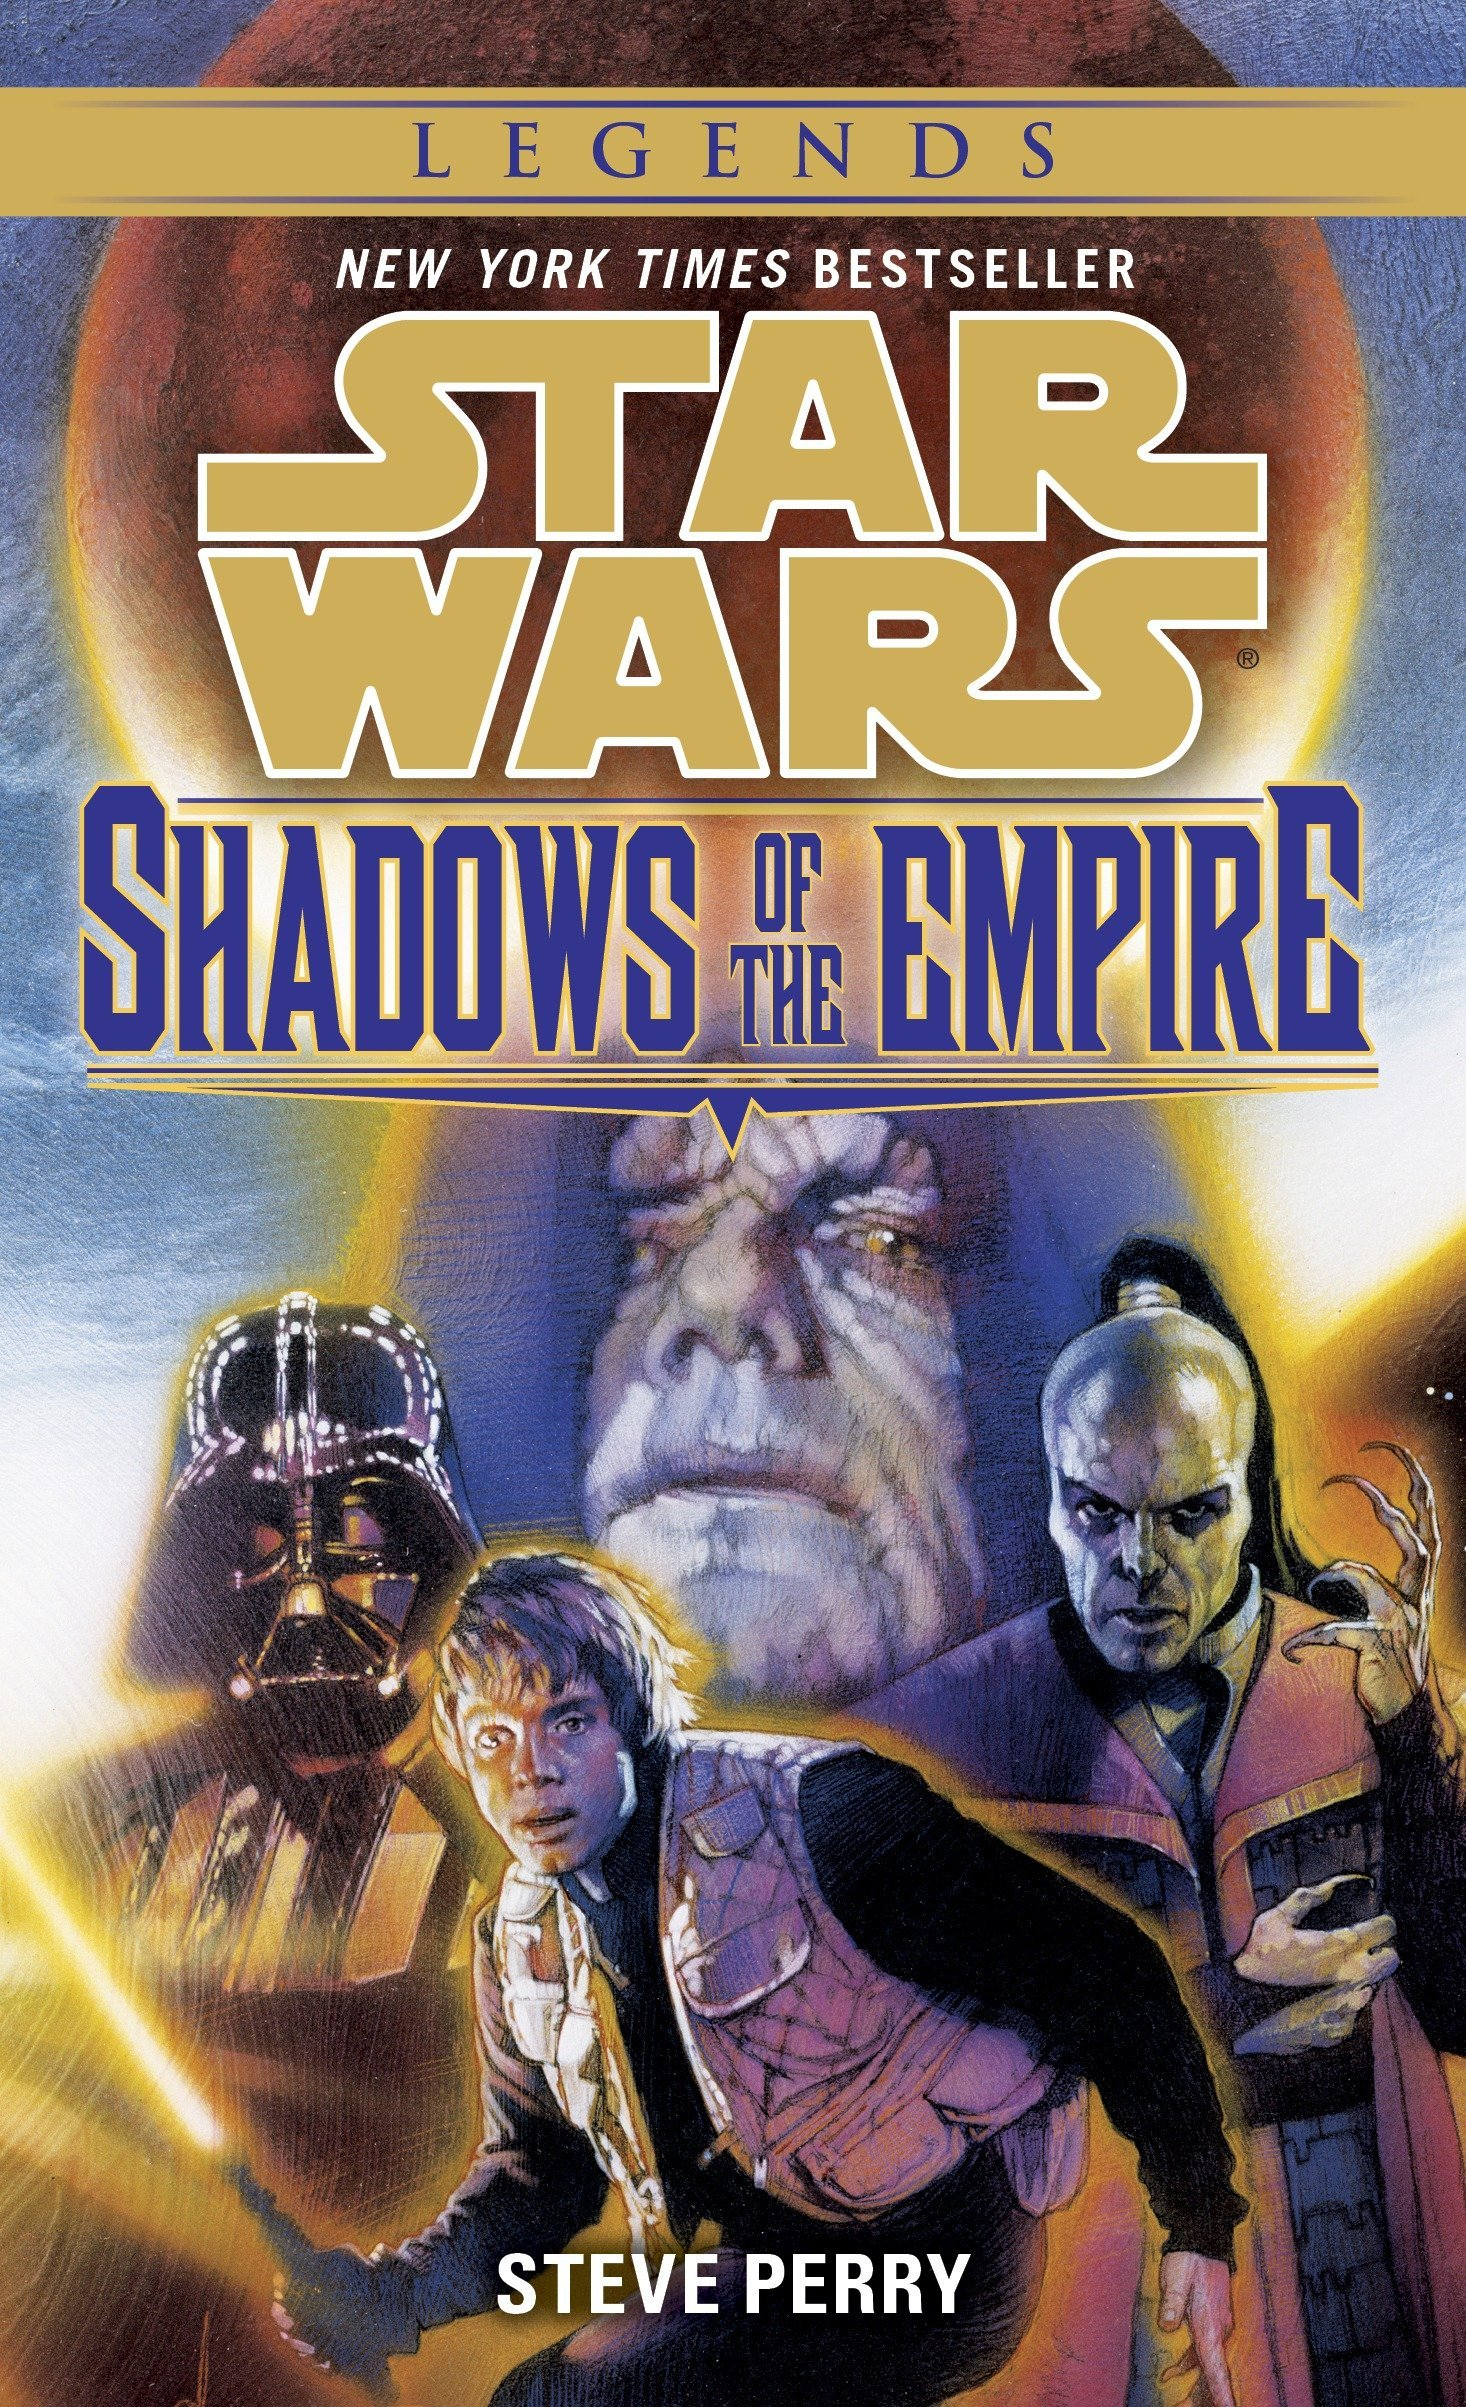 Image result for star wars shadows of the empire book